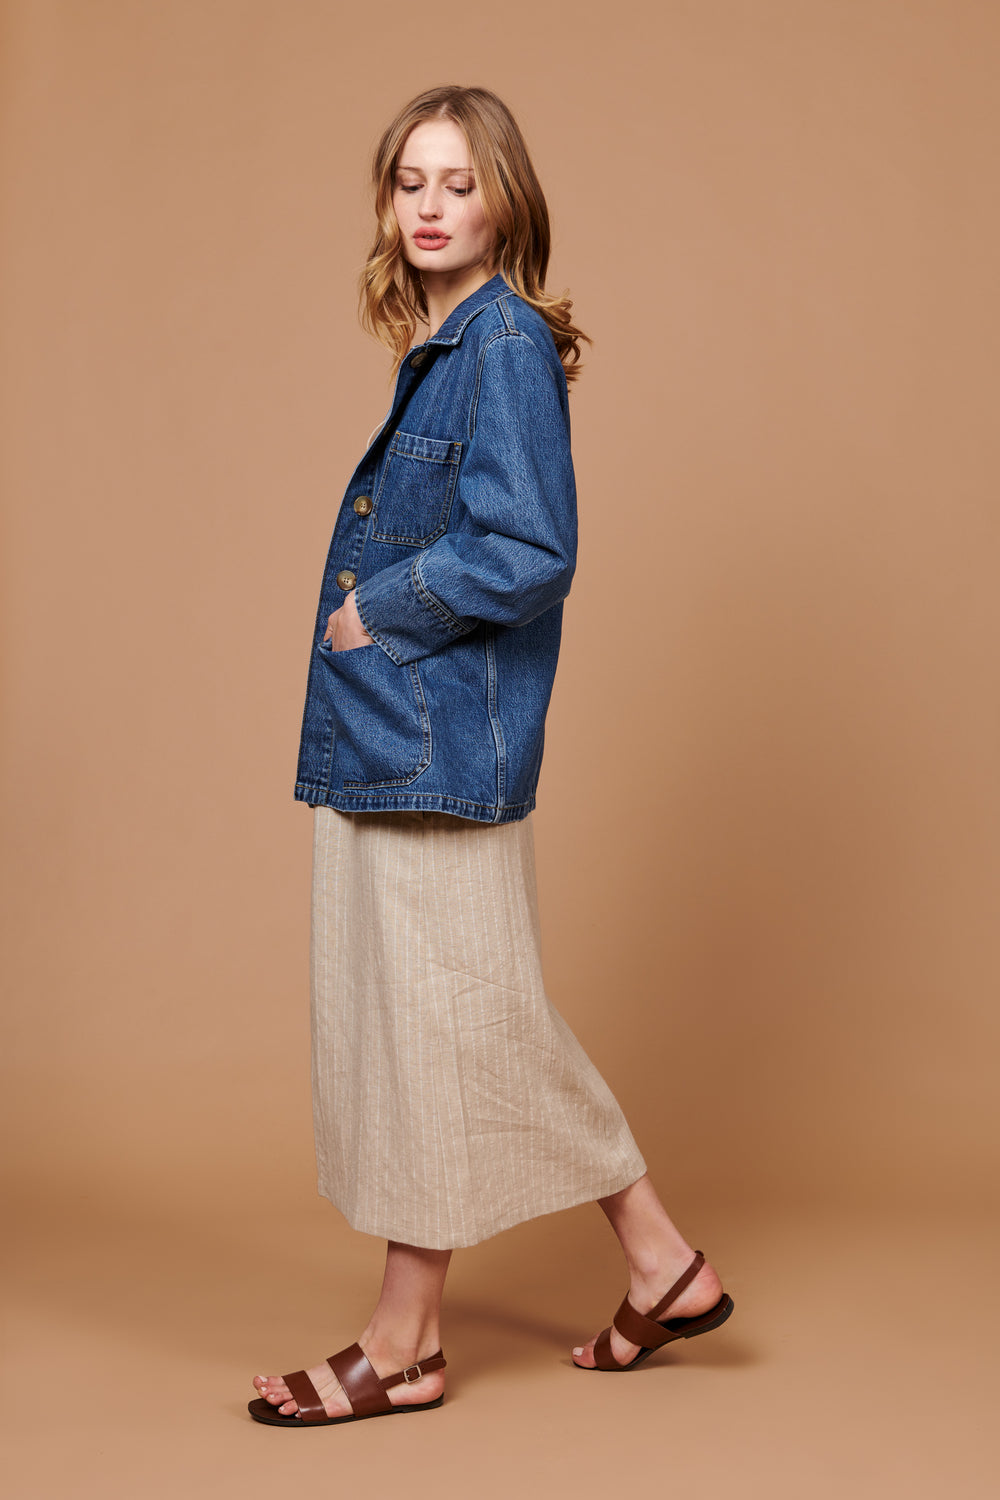 Jordan Jacket in Dark Blue Denim - Whimsy & Row